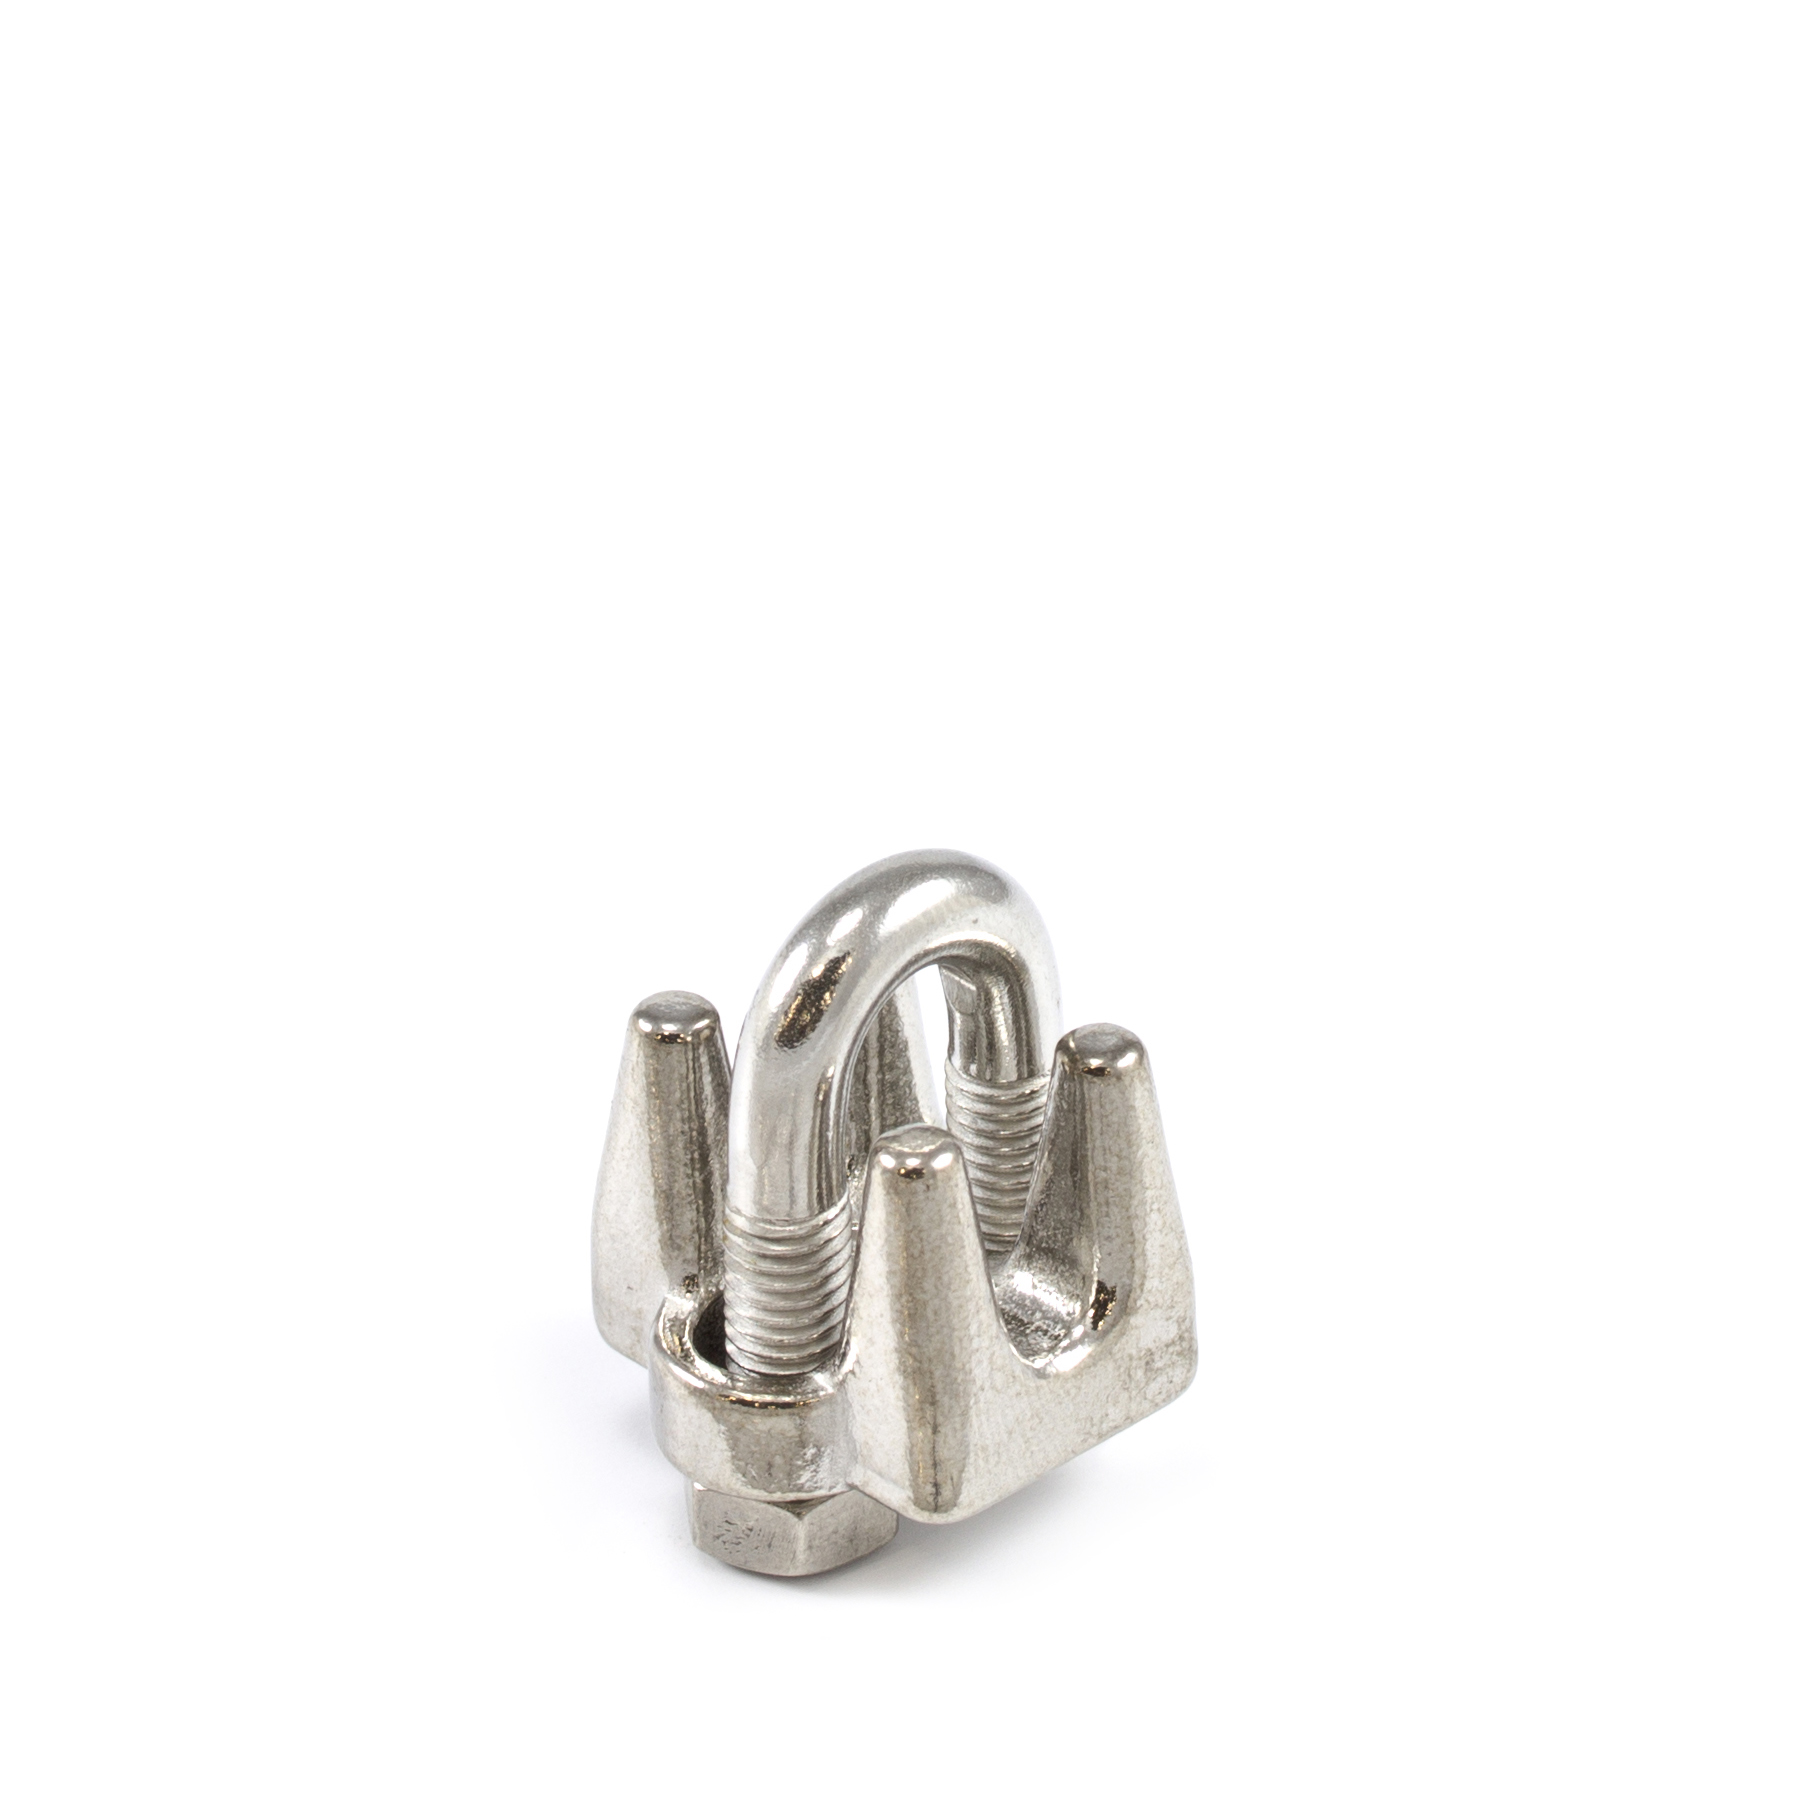 Polyfab Pro Rope Clamp #SS-WRC-05 5mm